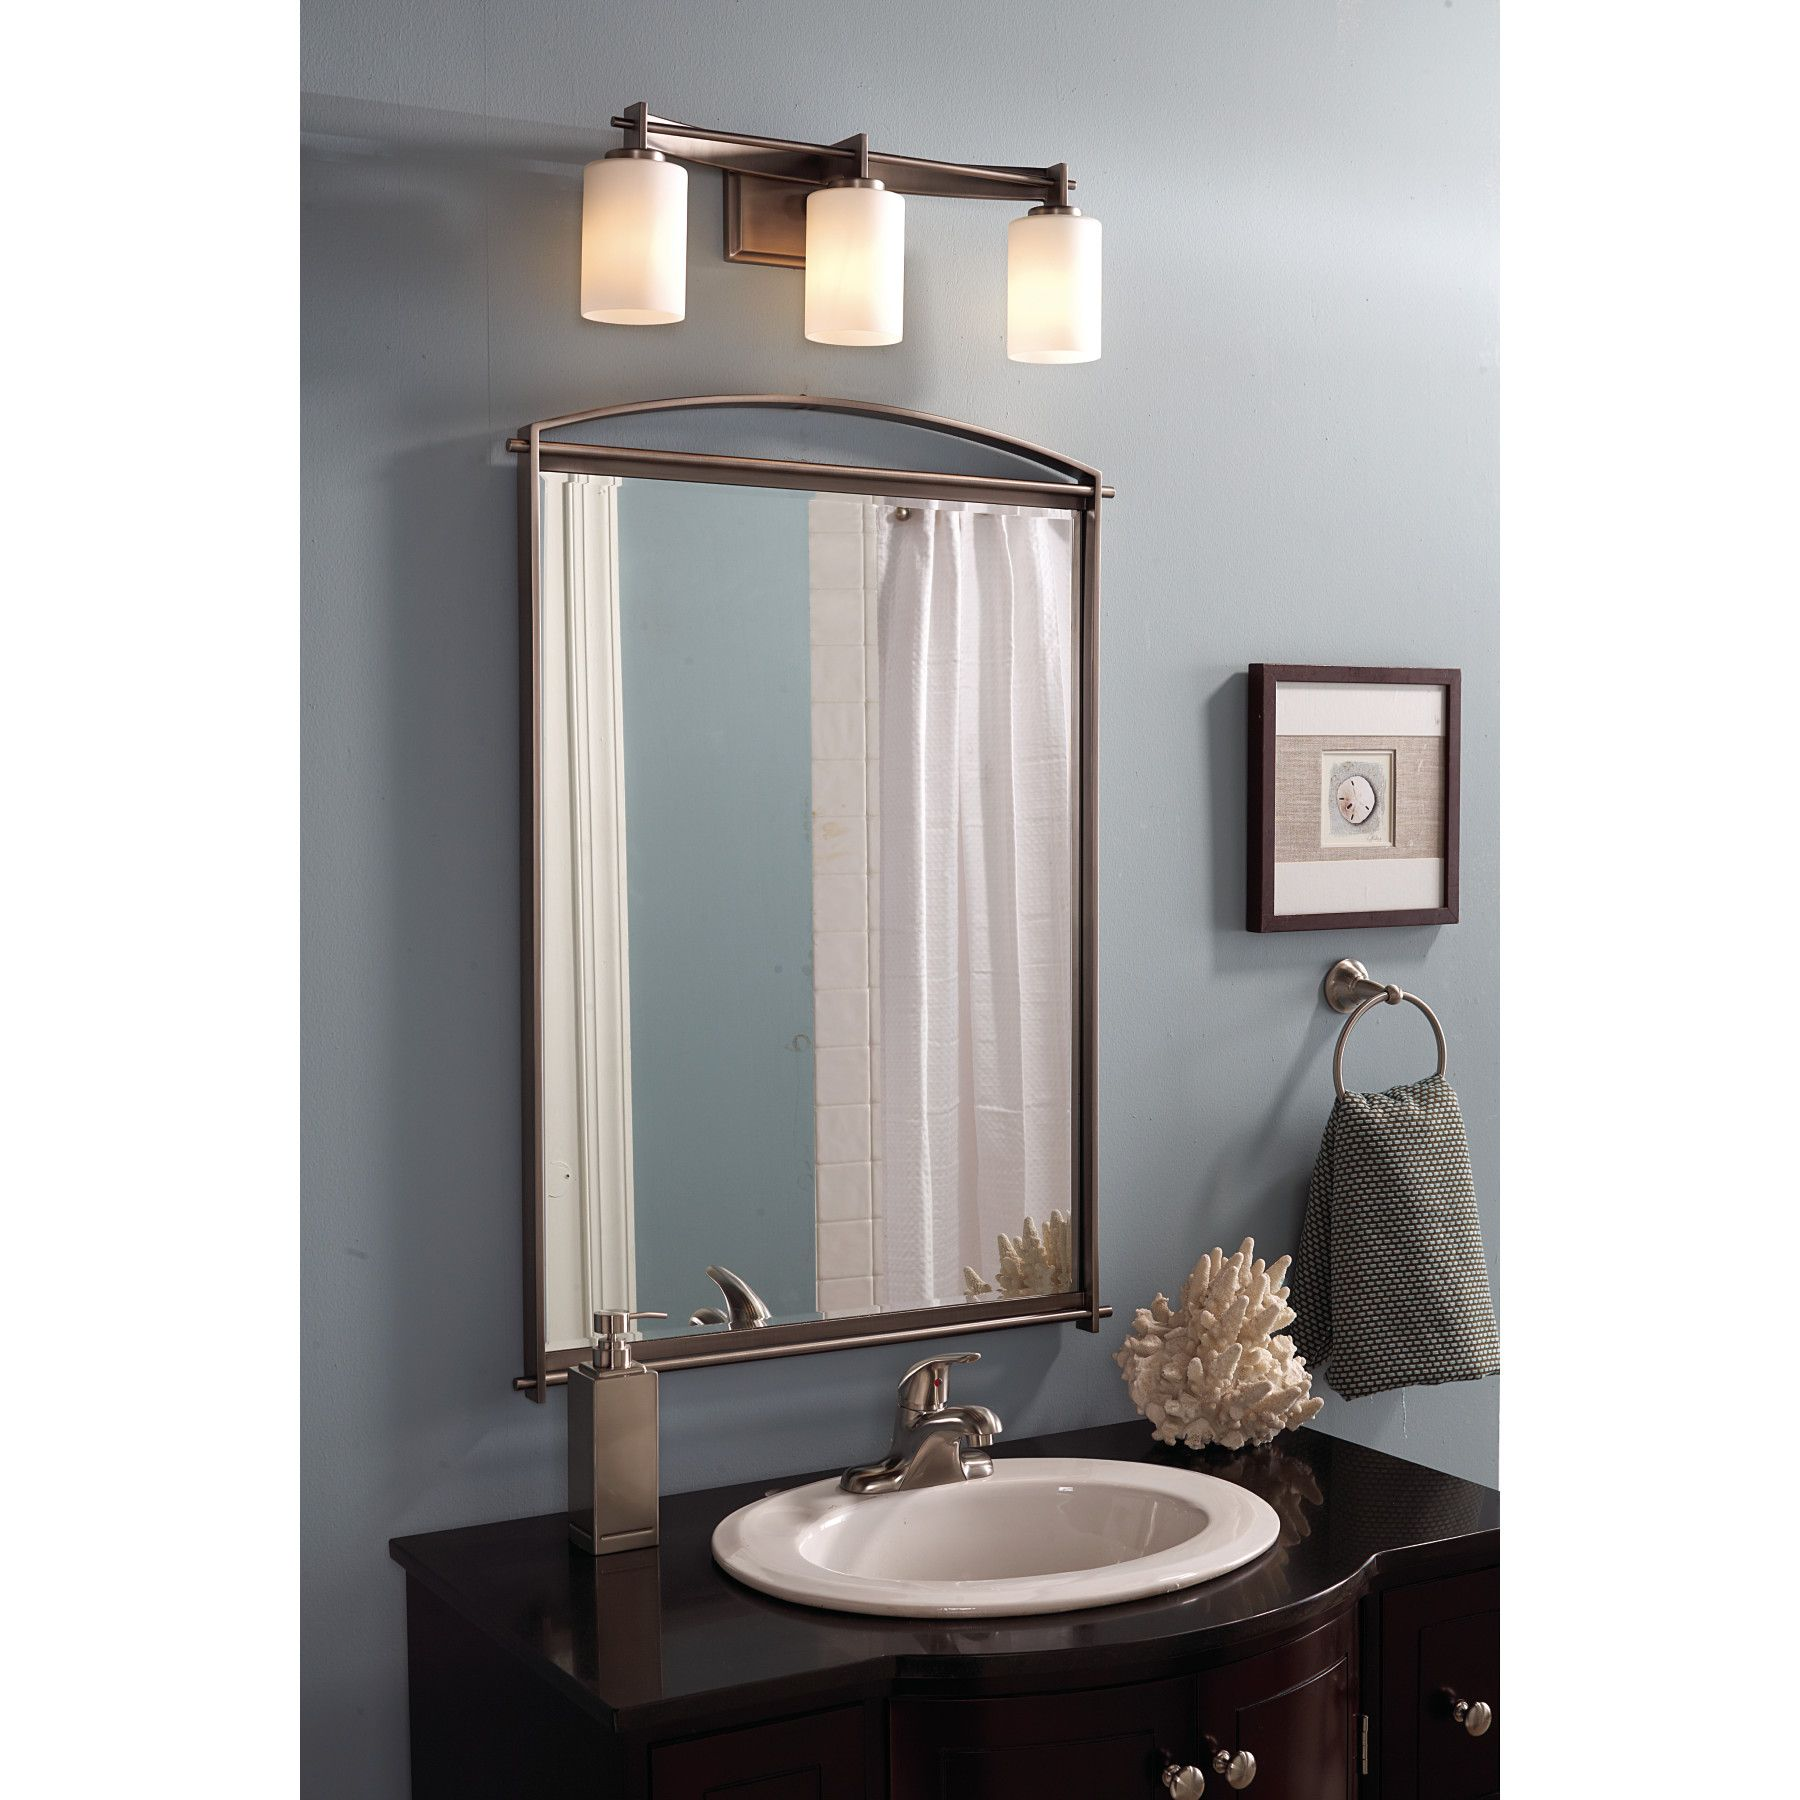 Quoizel's Taylor 3-Light Sconce provides plenty of light above a vanity. We love the contemporary lines of this sconce!